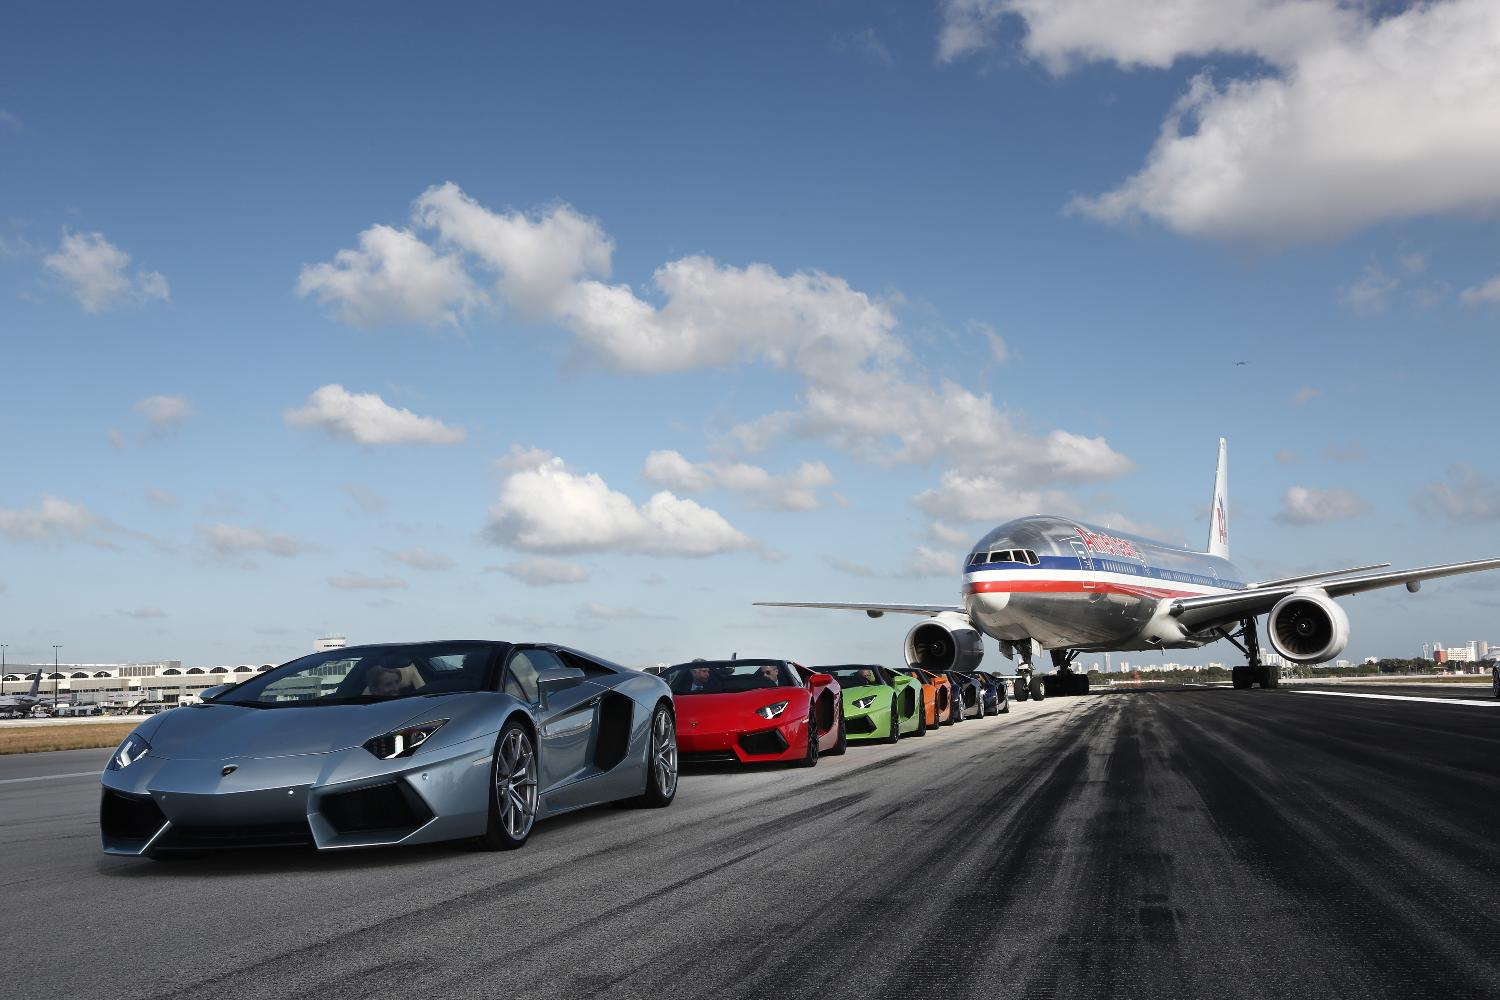 boeing 777 of american airlines and lamborghini aventador on runway